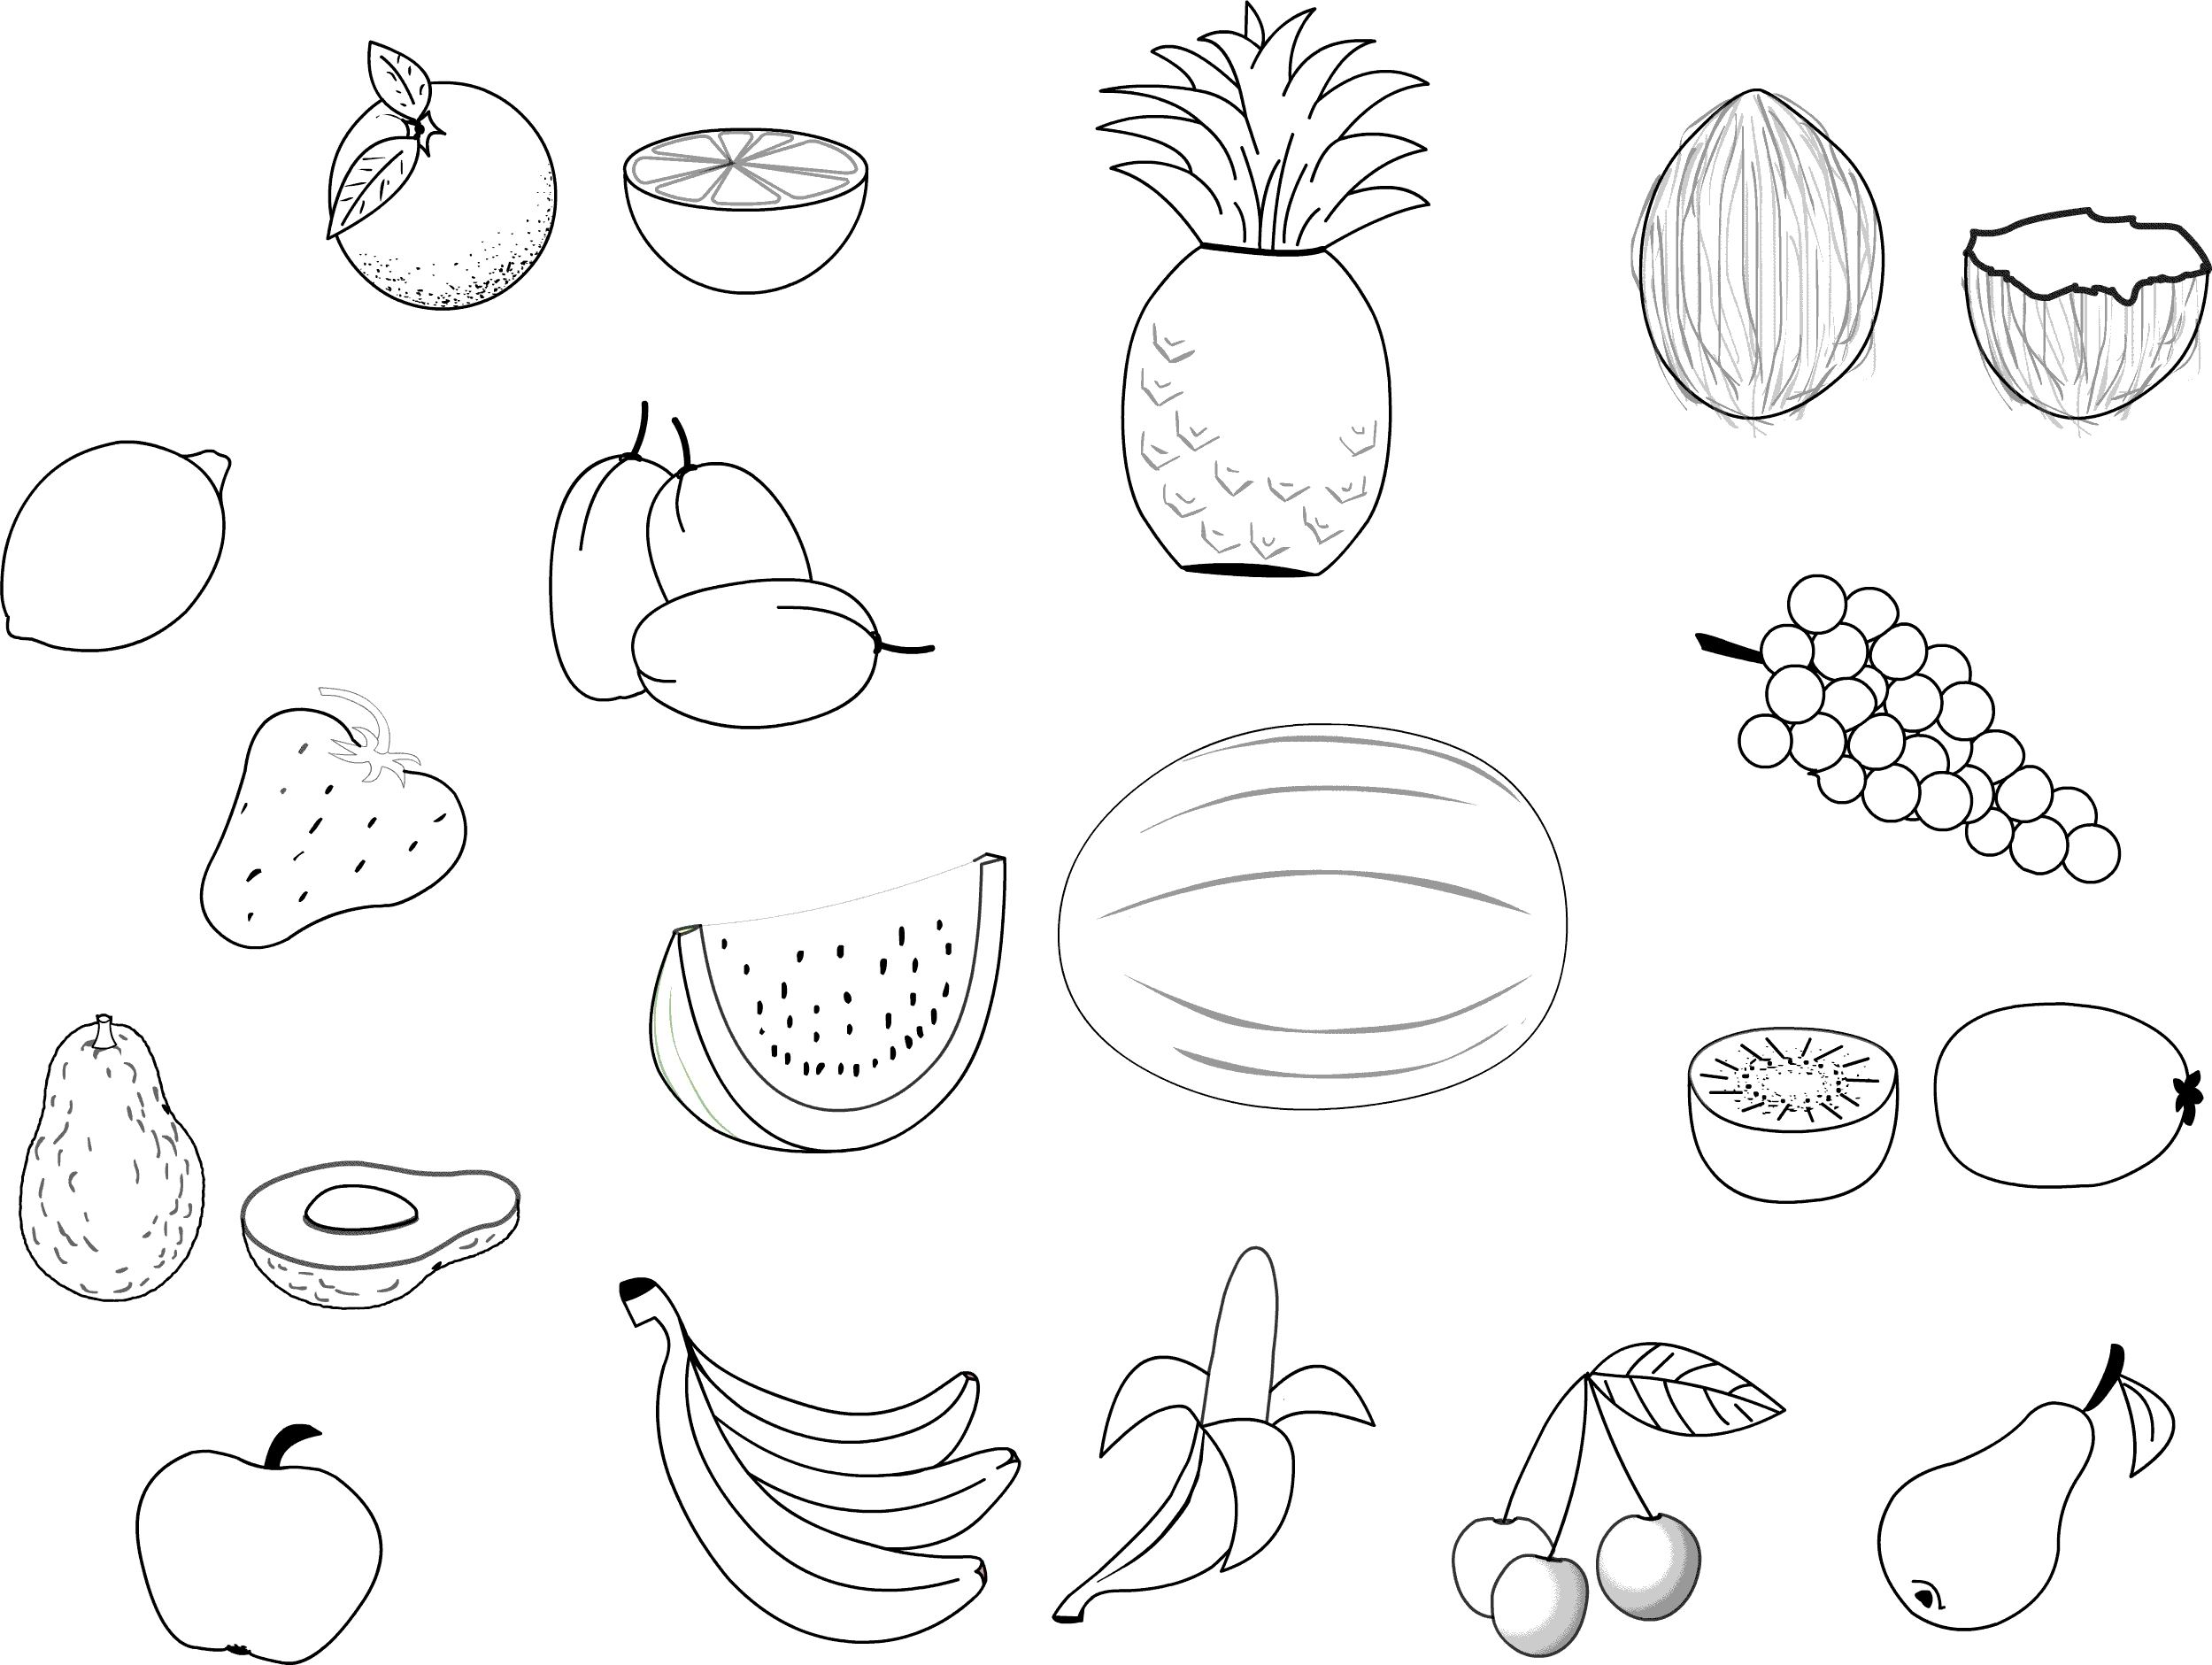 Coloriage Les Fruits.Fruits Legumes 4 Coloriage Fruits Et Legumes Coloriages